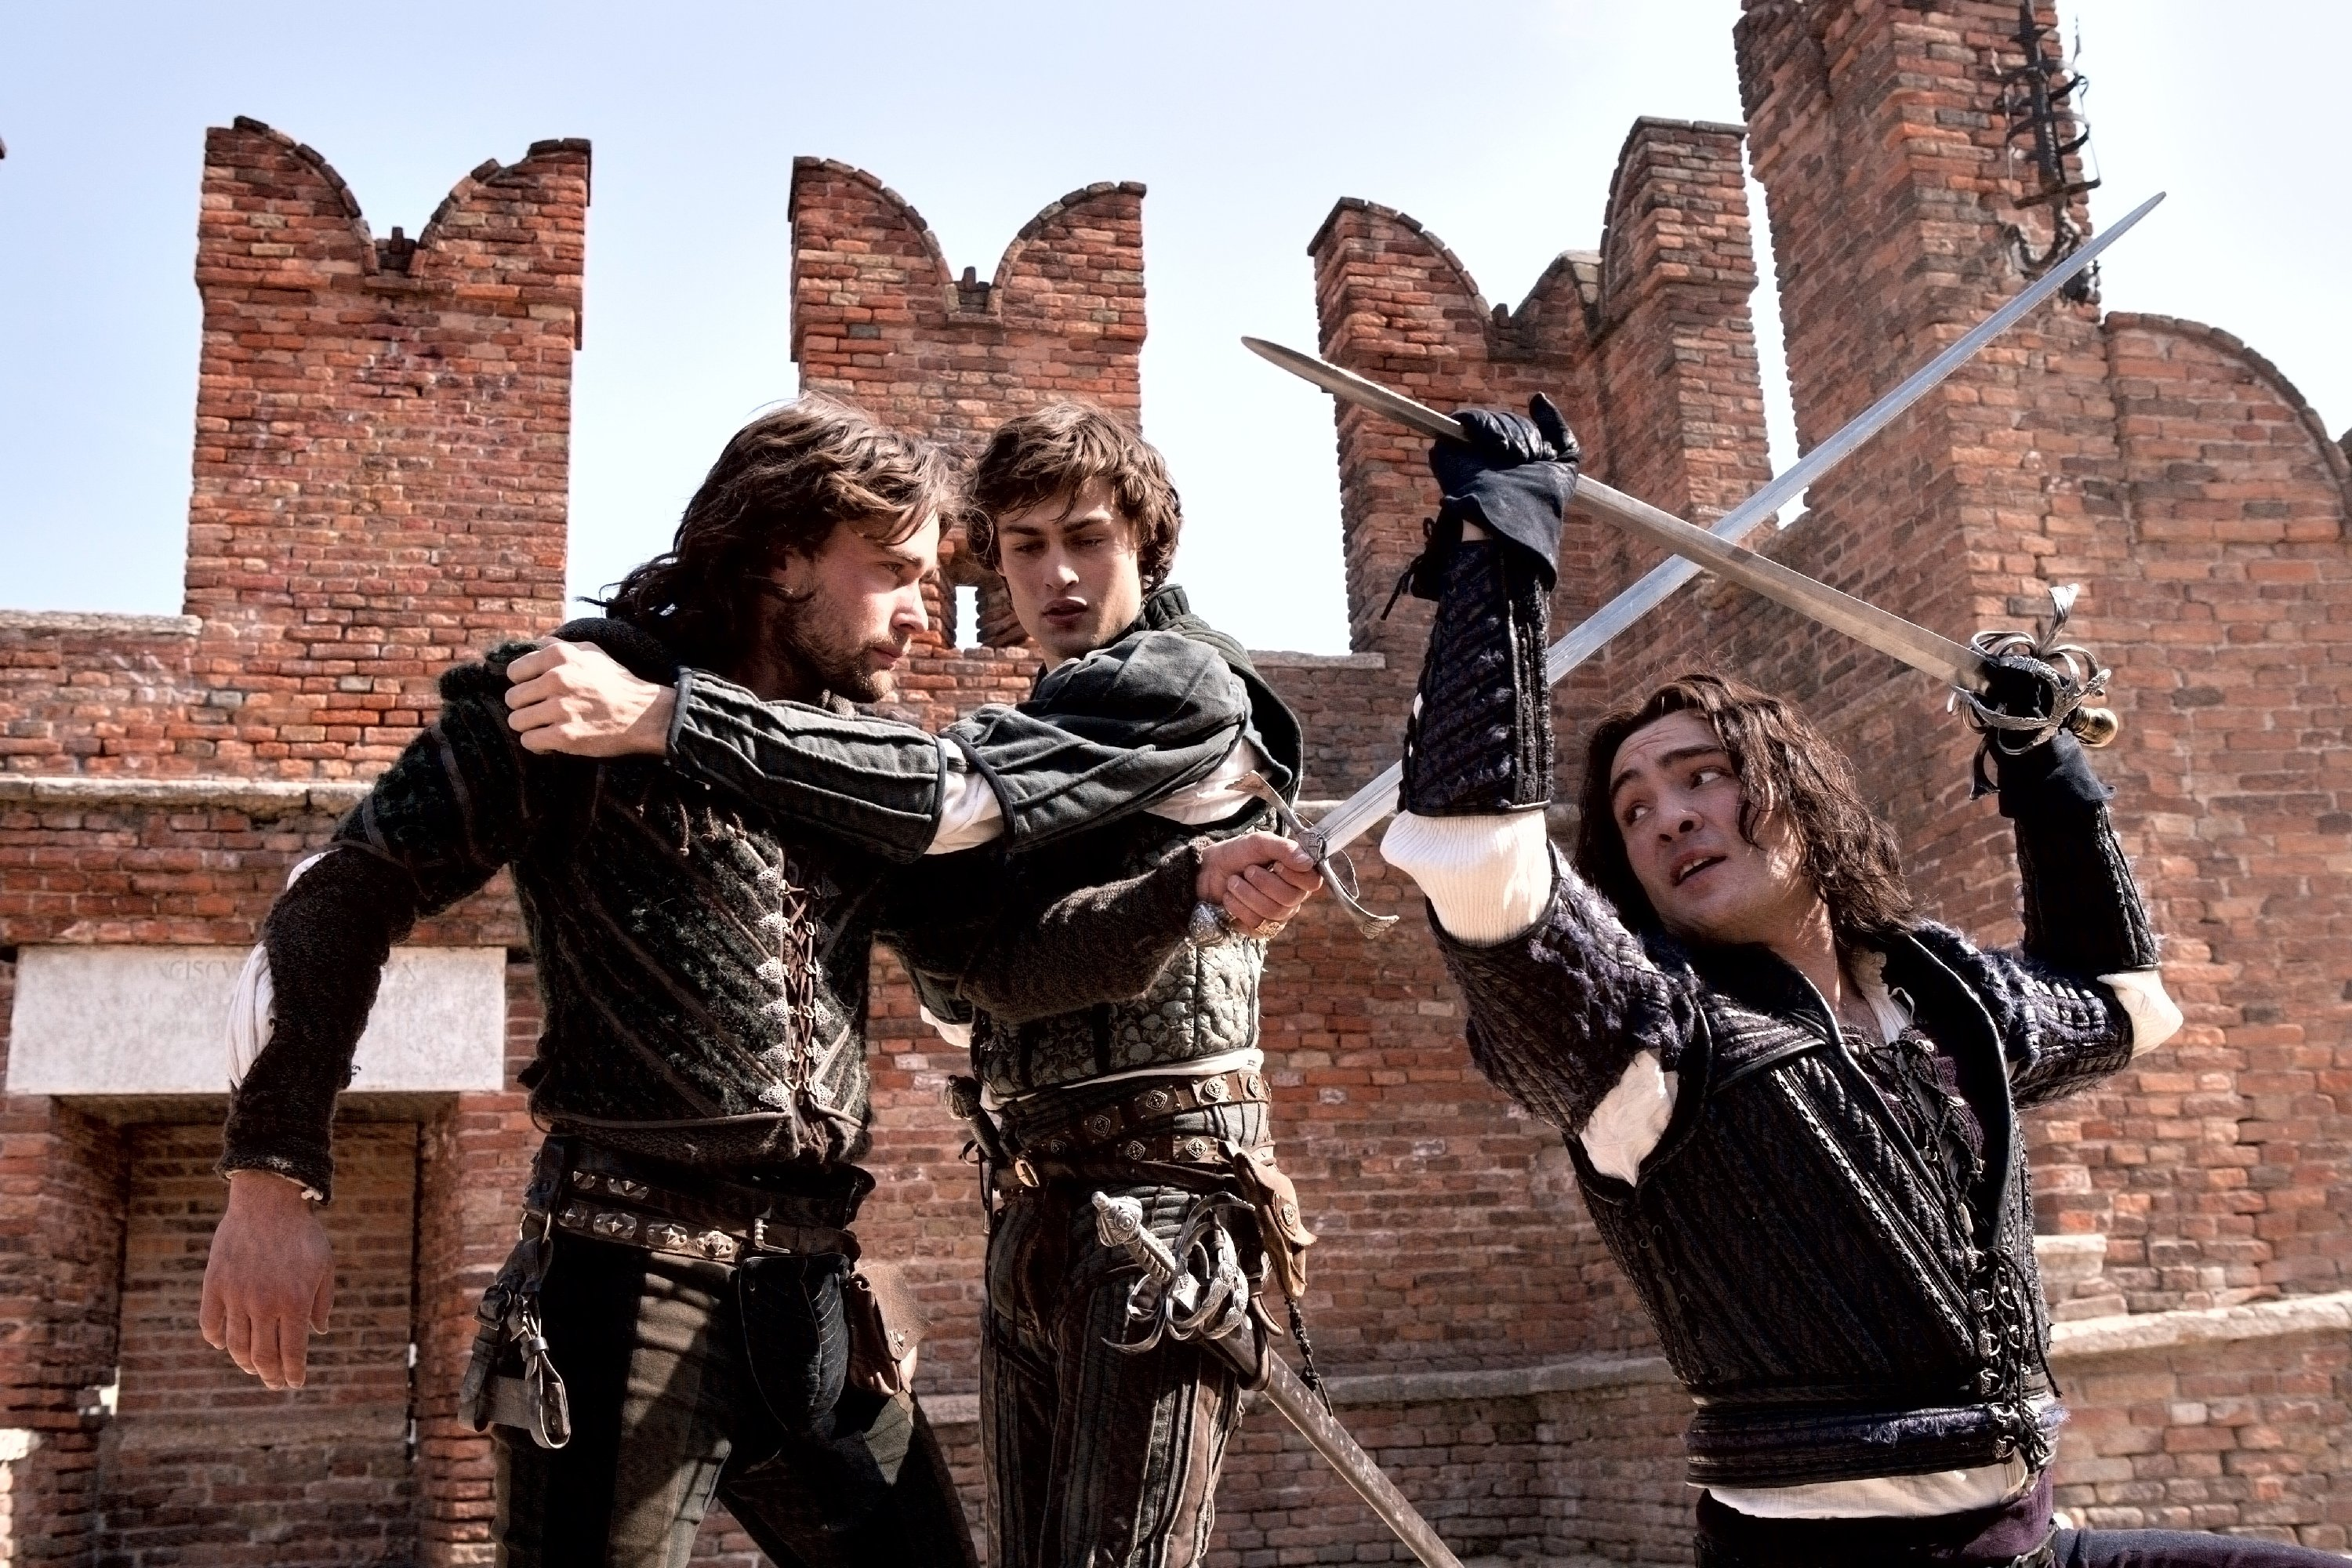 the battle between tybalt and mercutio Protagonists from the point of view of the two warring families 2  mercutio drew  his sword challenging tybalt romeo told tybalt to put his.